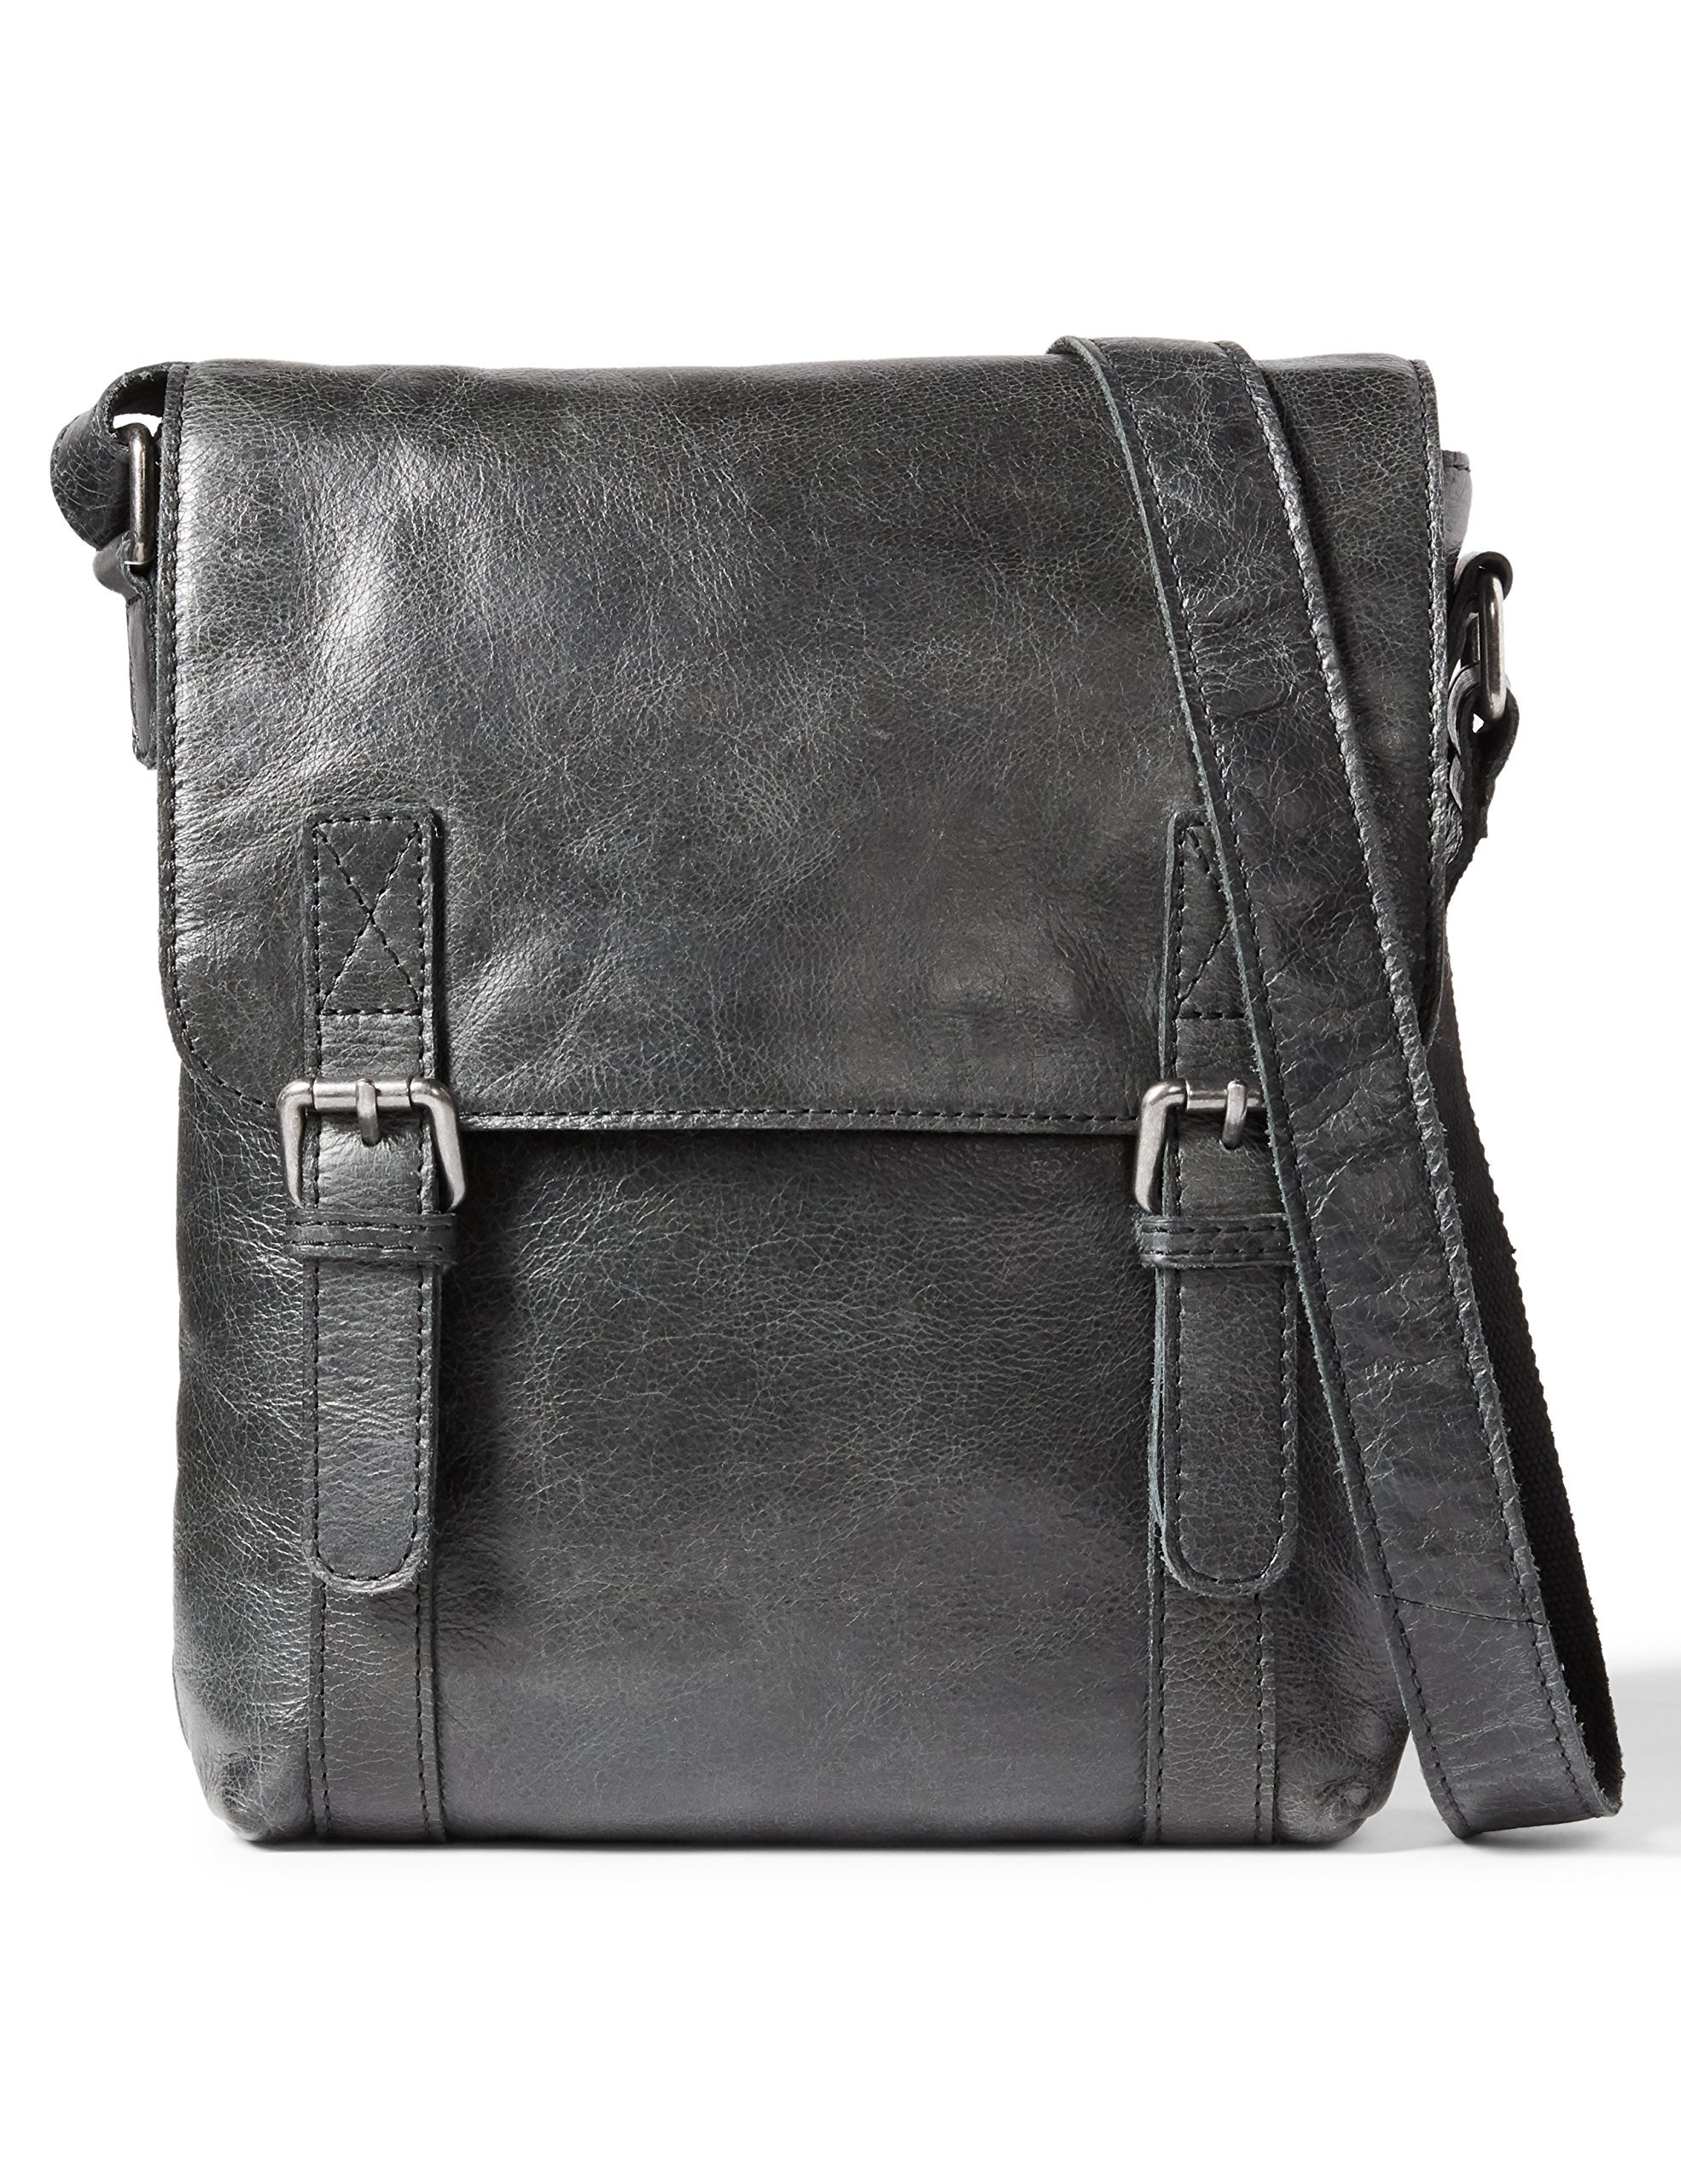 Estalon Leather Laptop Messenger Bag for Men a87c878b14977